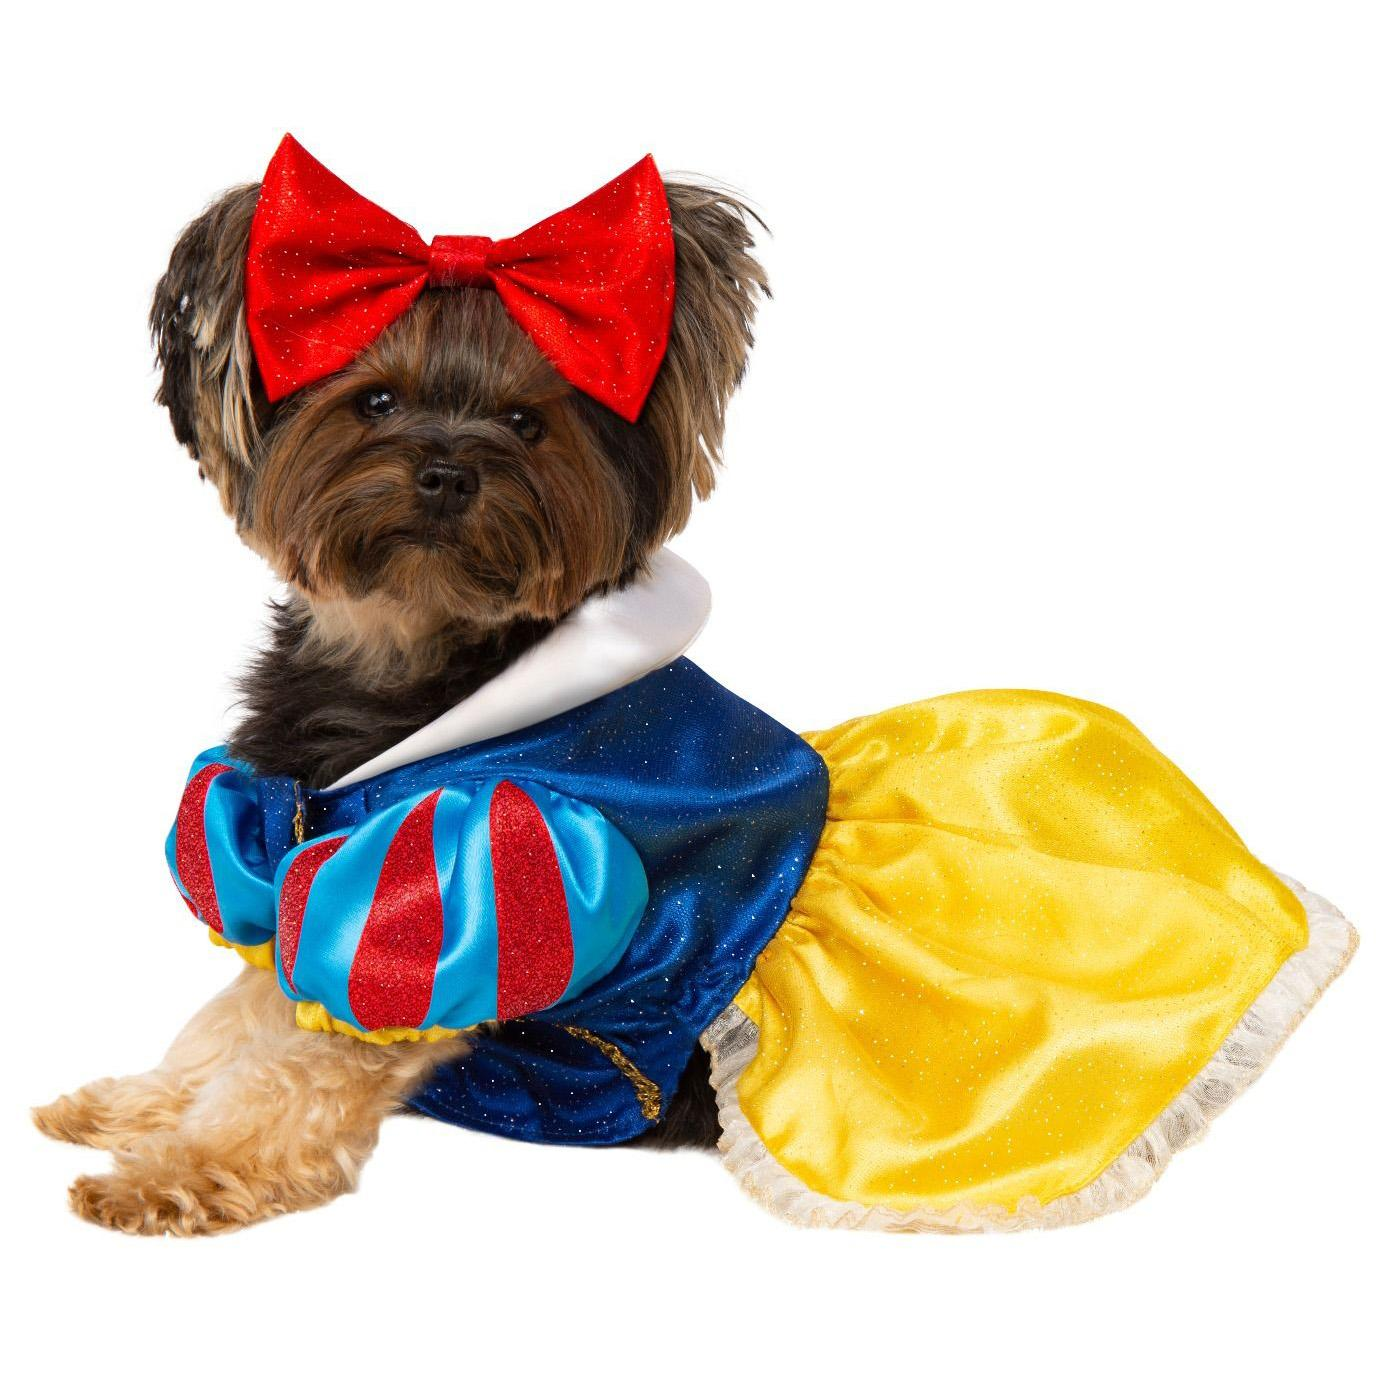 Disney Snow White Dog Costume by Rubies